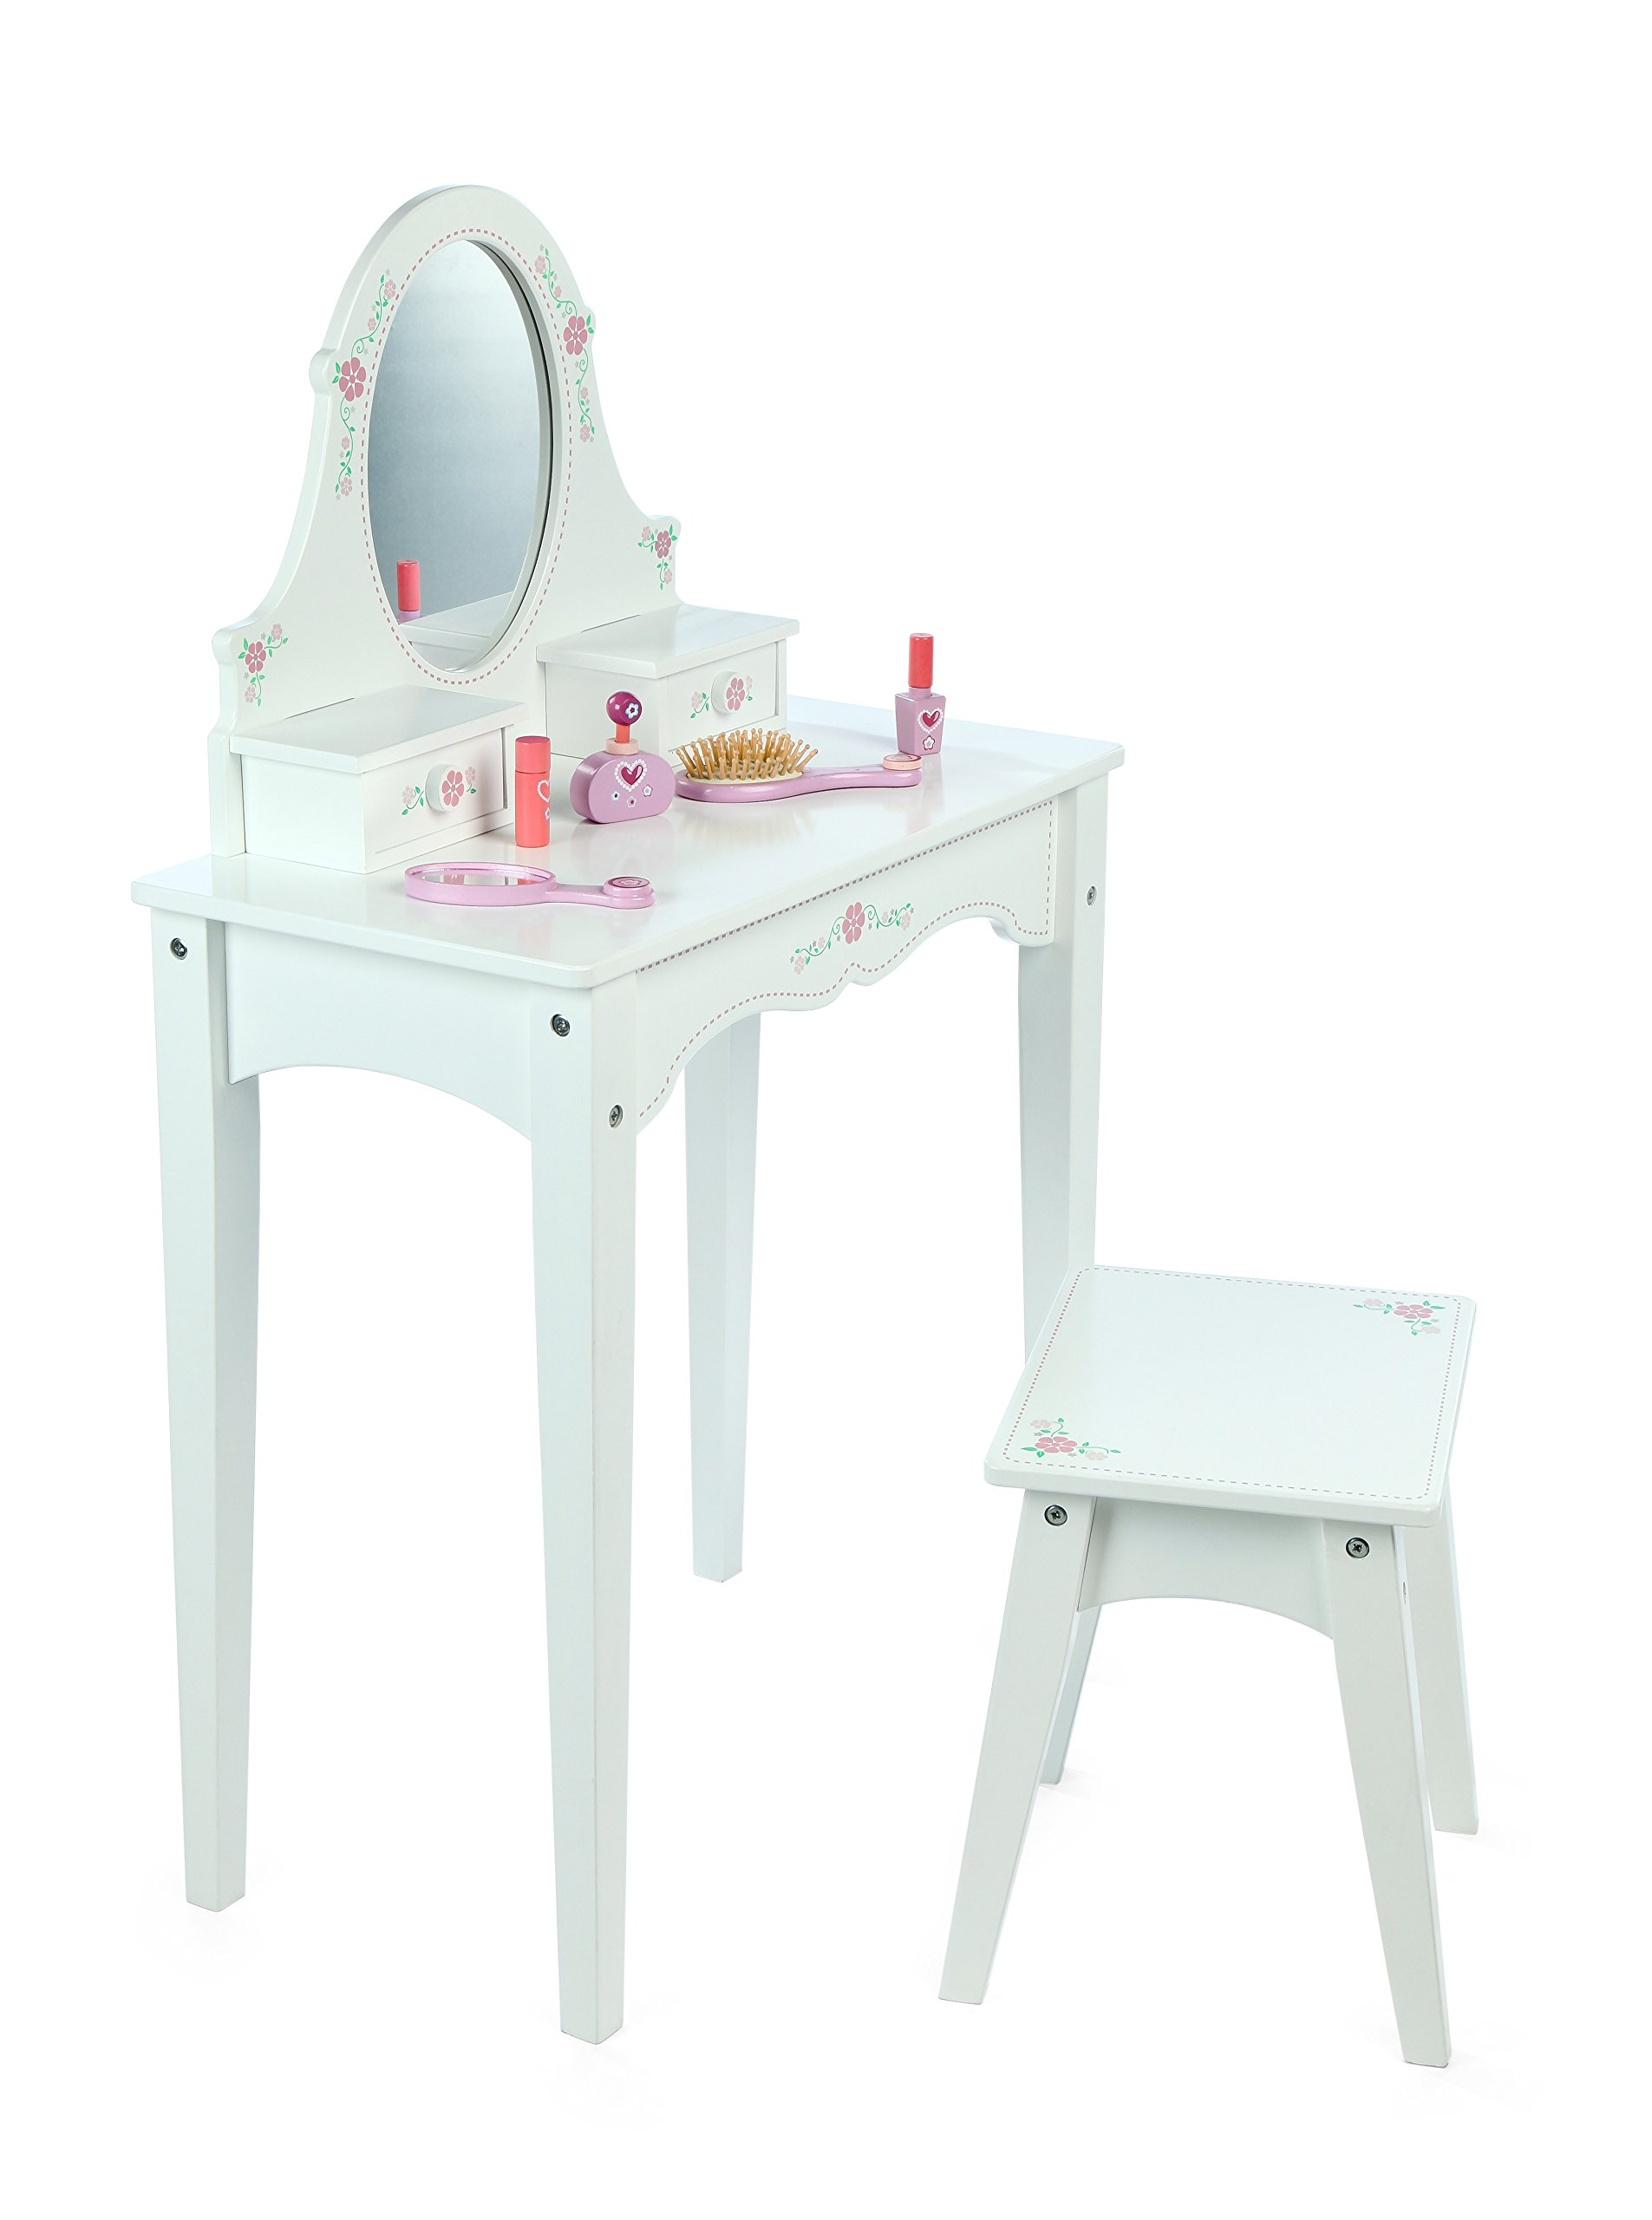 Dressing Table With Mirror And Stool: Tidlo Wooden Dressing Table With Stool, Mirror & Storage